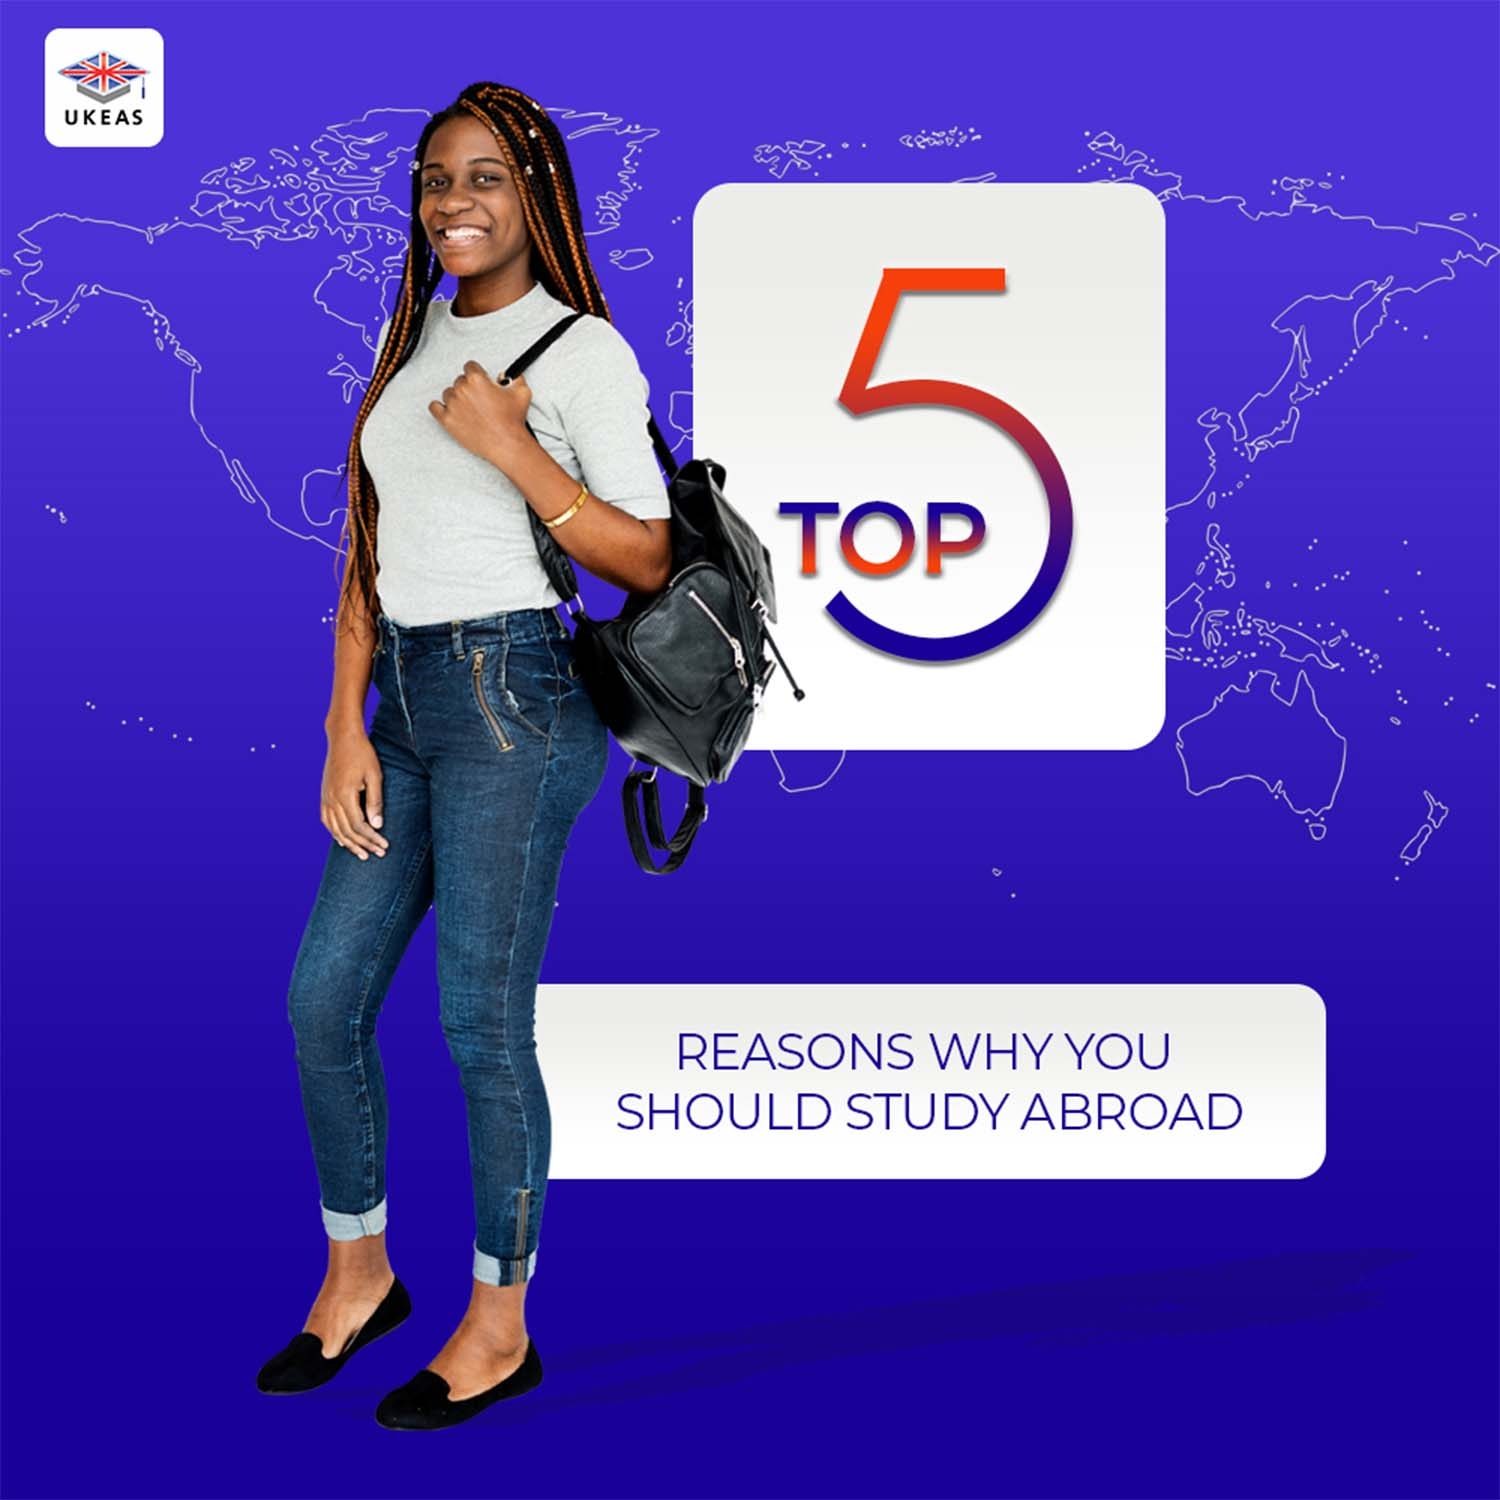 Top 5 Reasons Why You Should Study Abroad